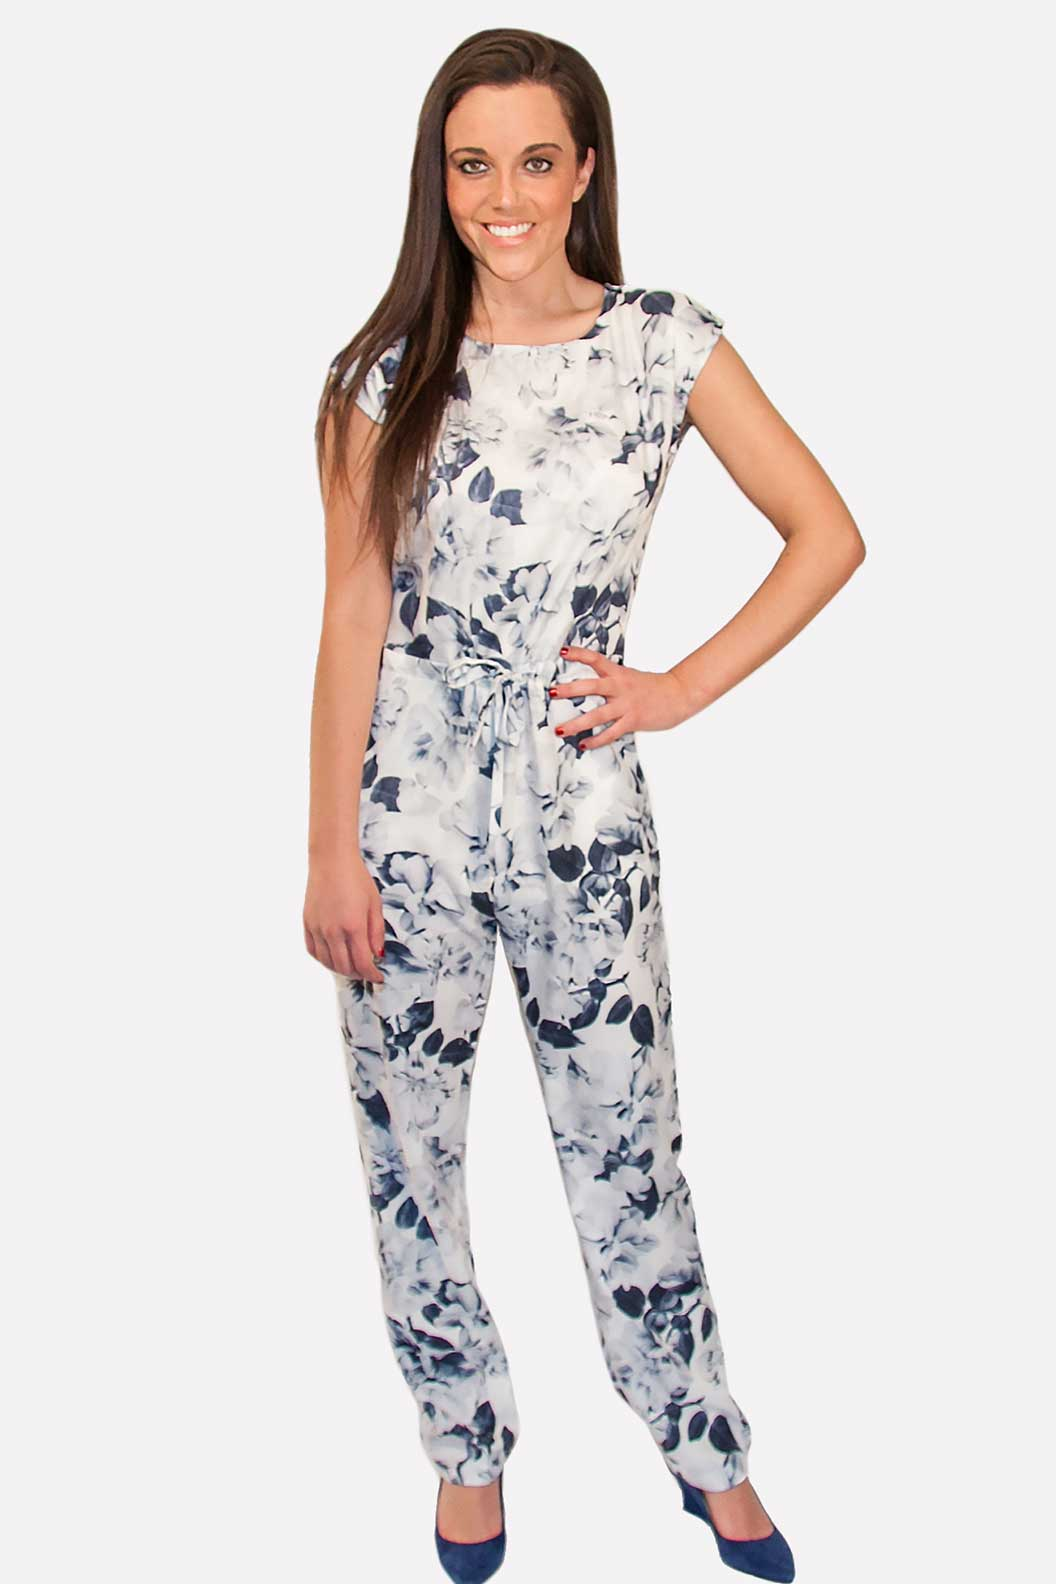 Flower Jumpsuit White w Blue Floral | SkyStruk